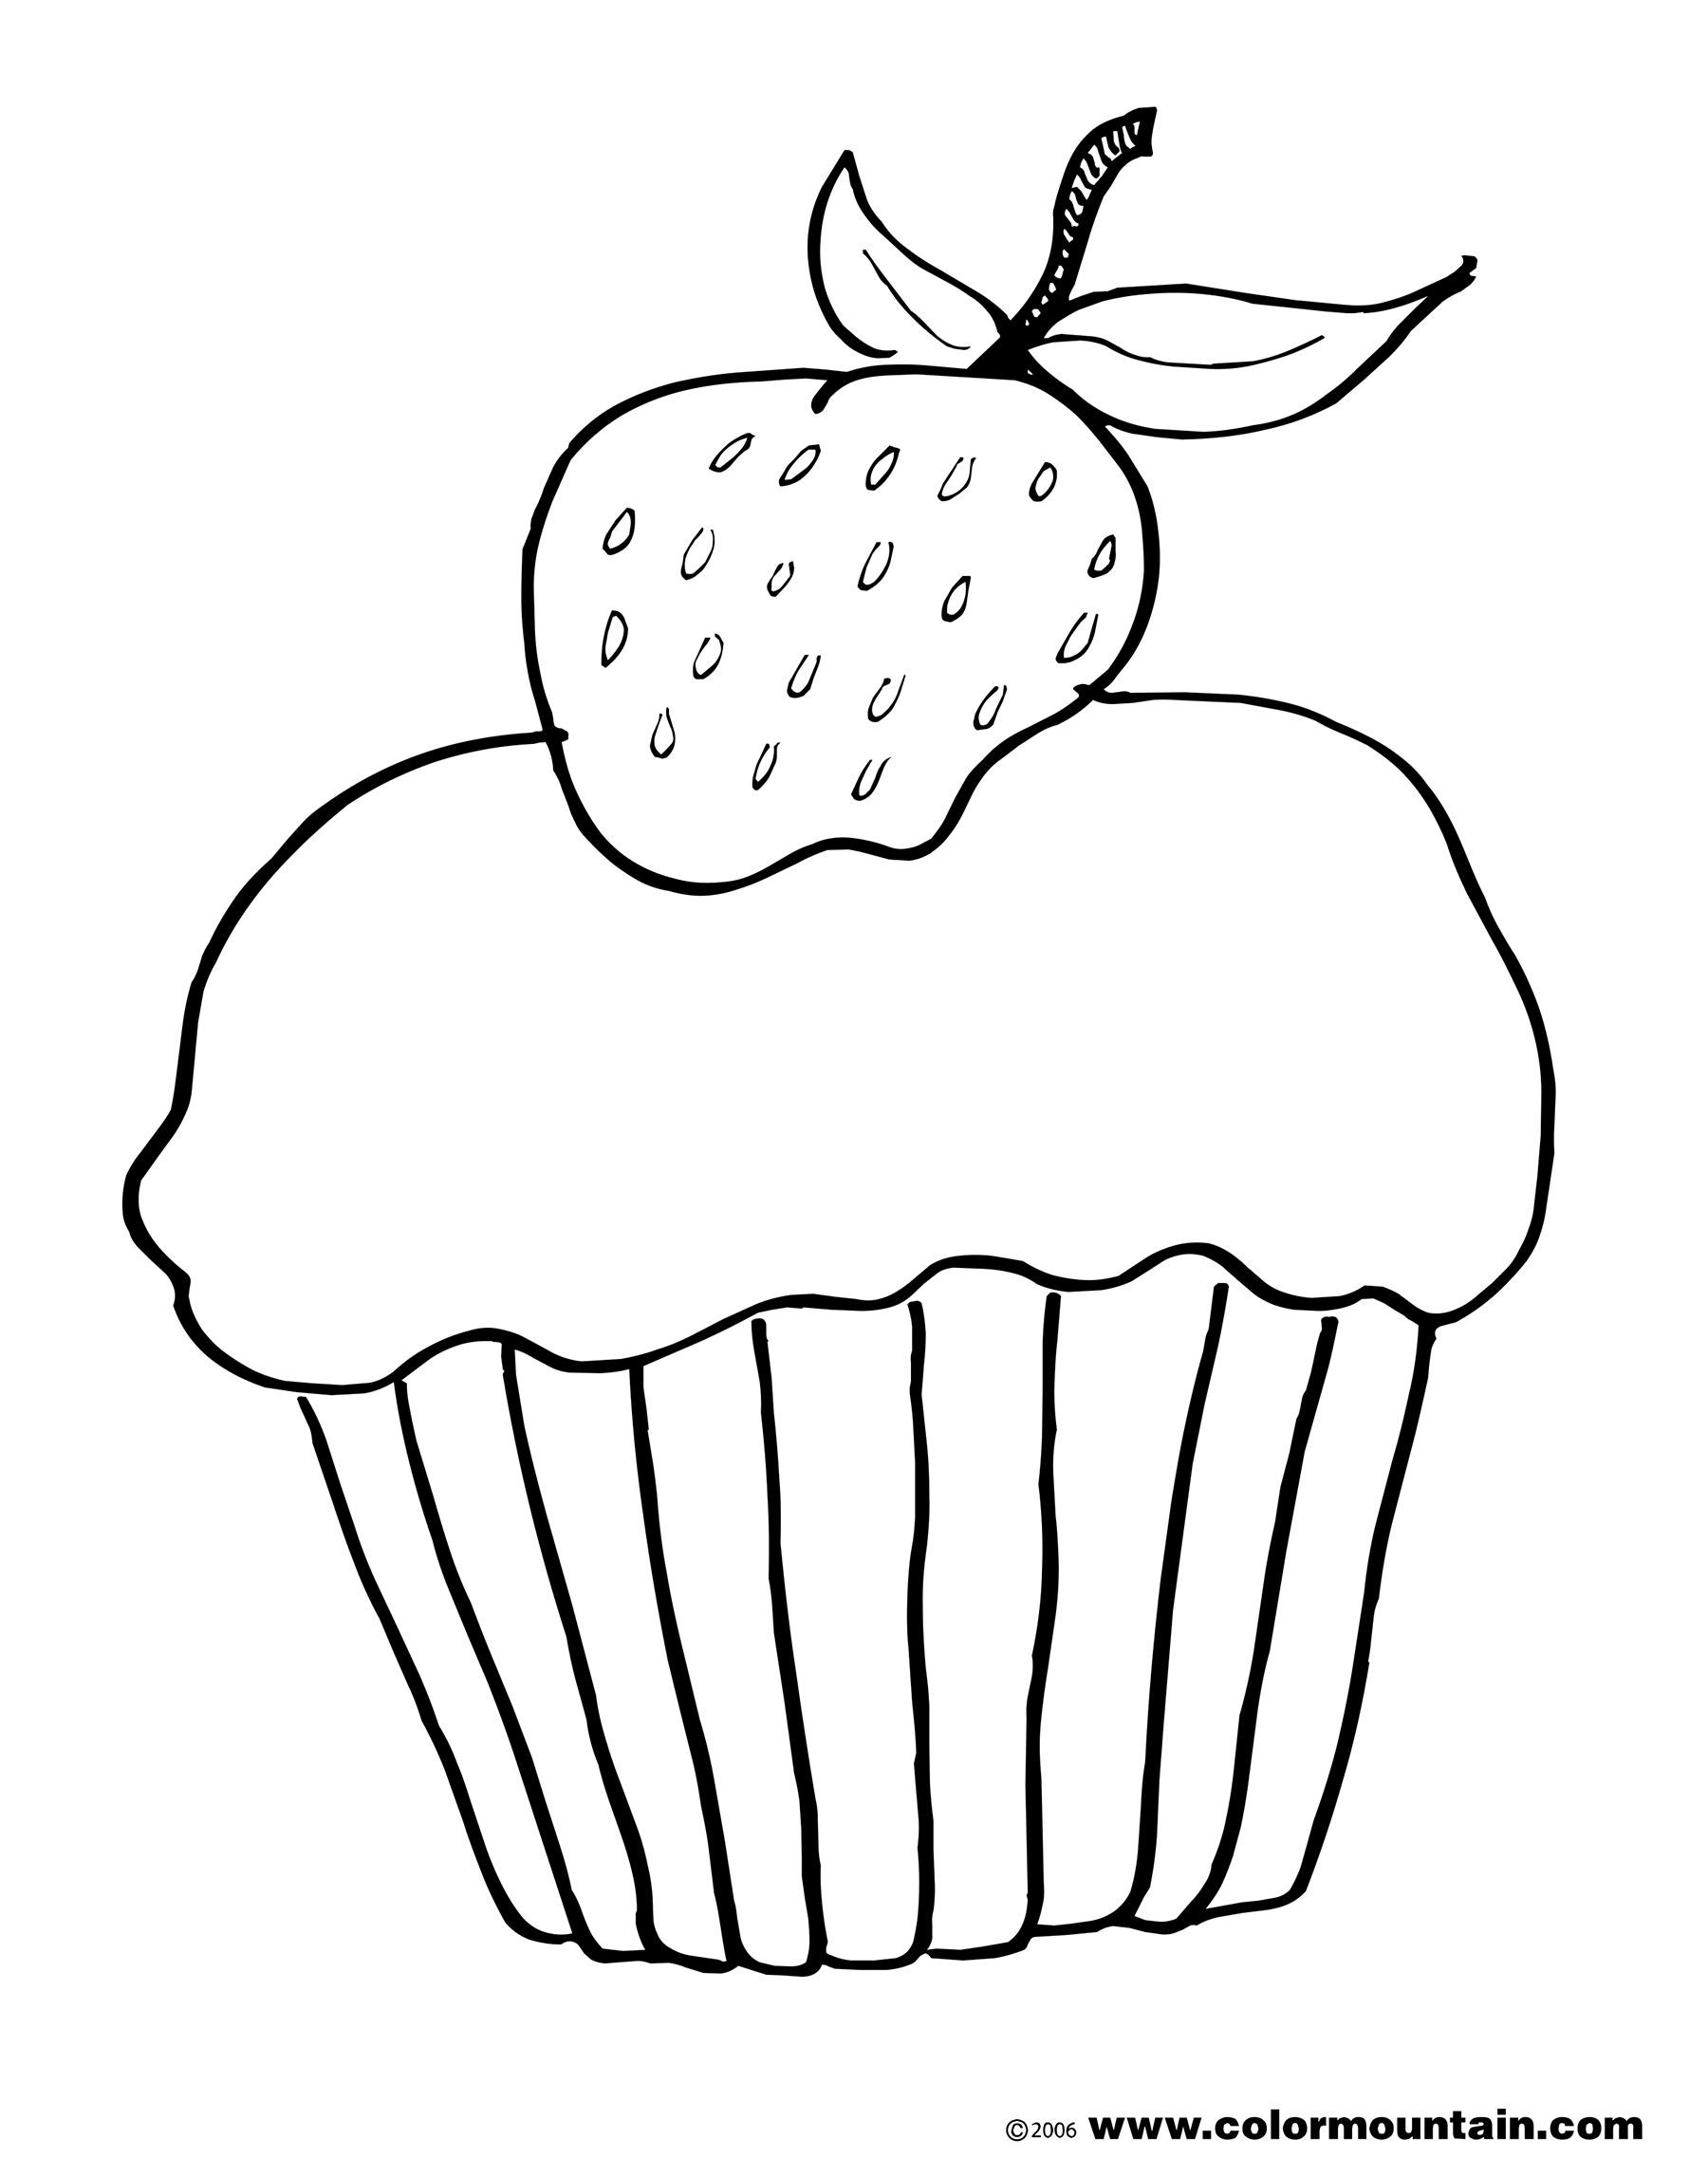 Chocolate Cake Coloring Page At Getcolorings